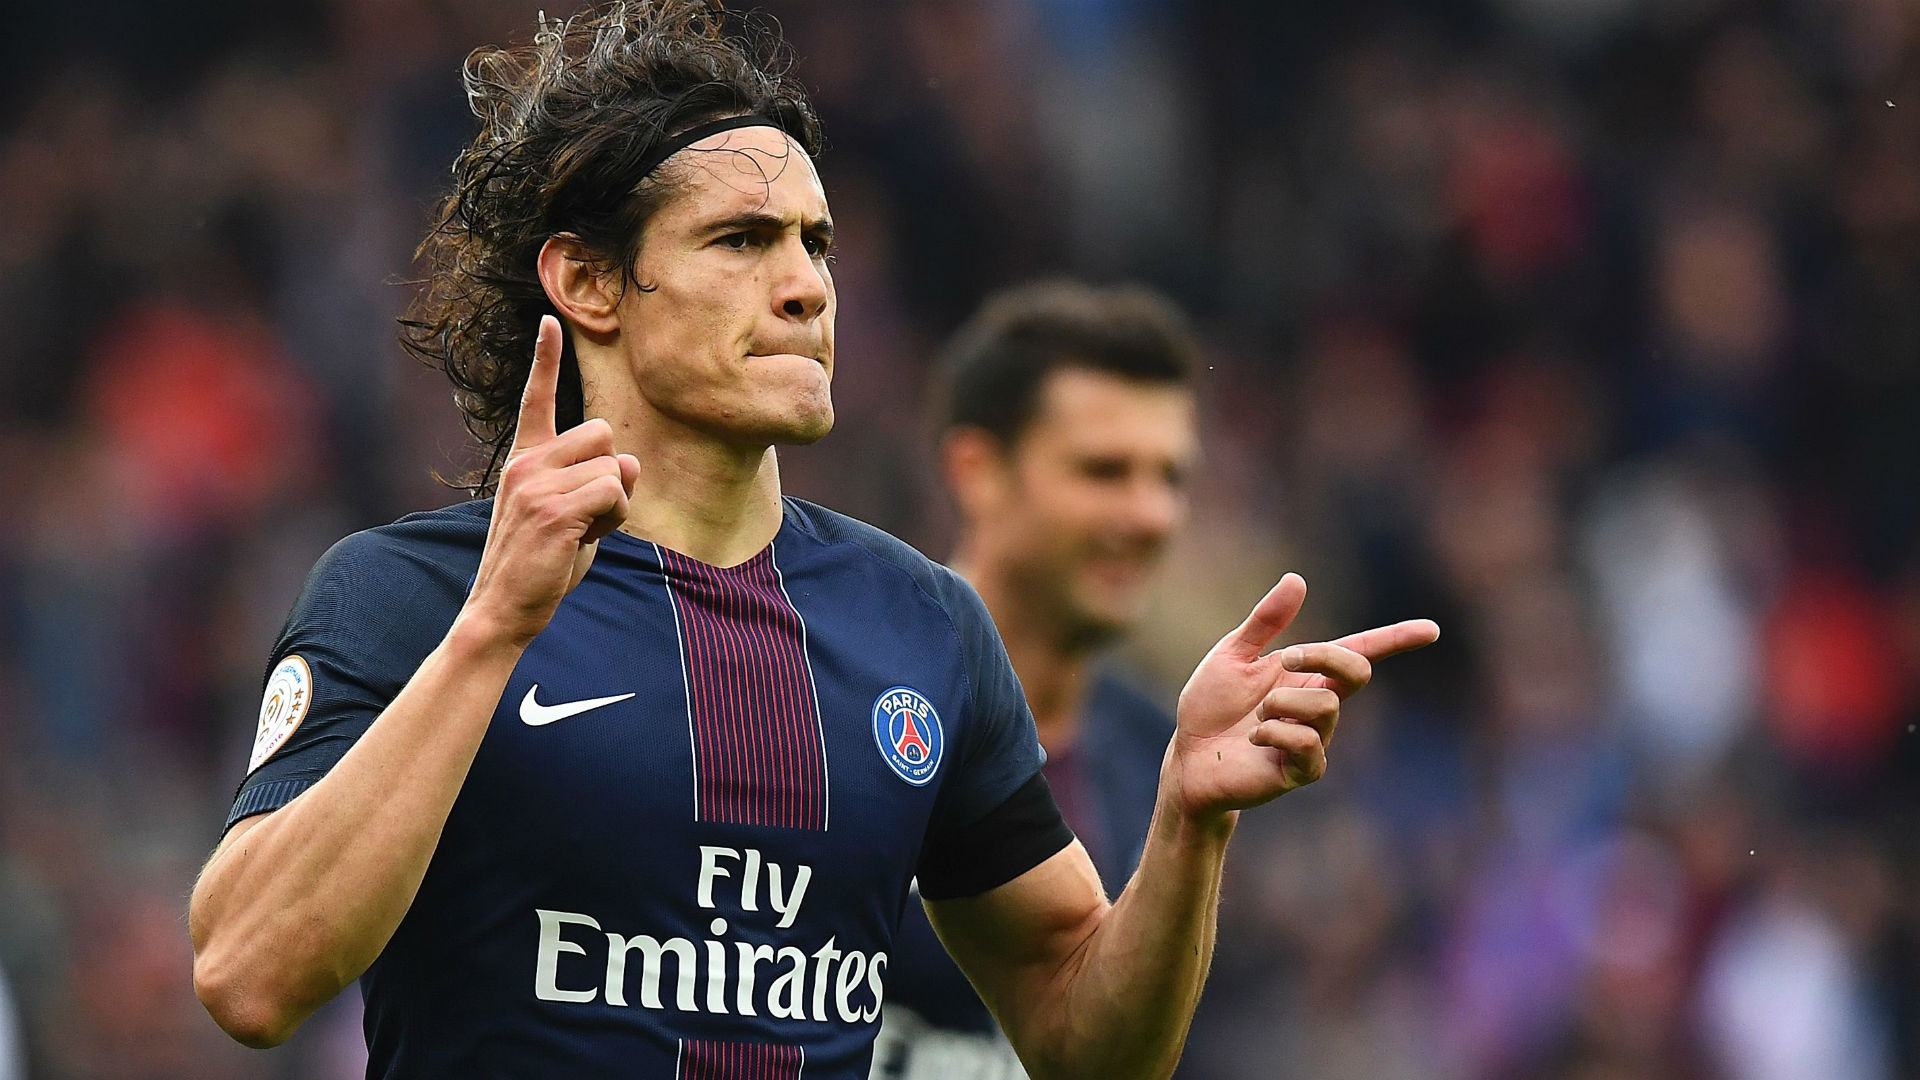 Edinson Cavani extends contract with Paris St Germain until 2020